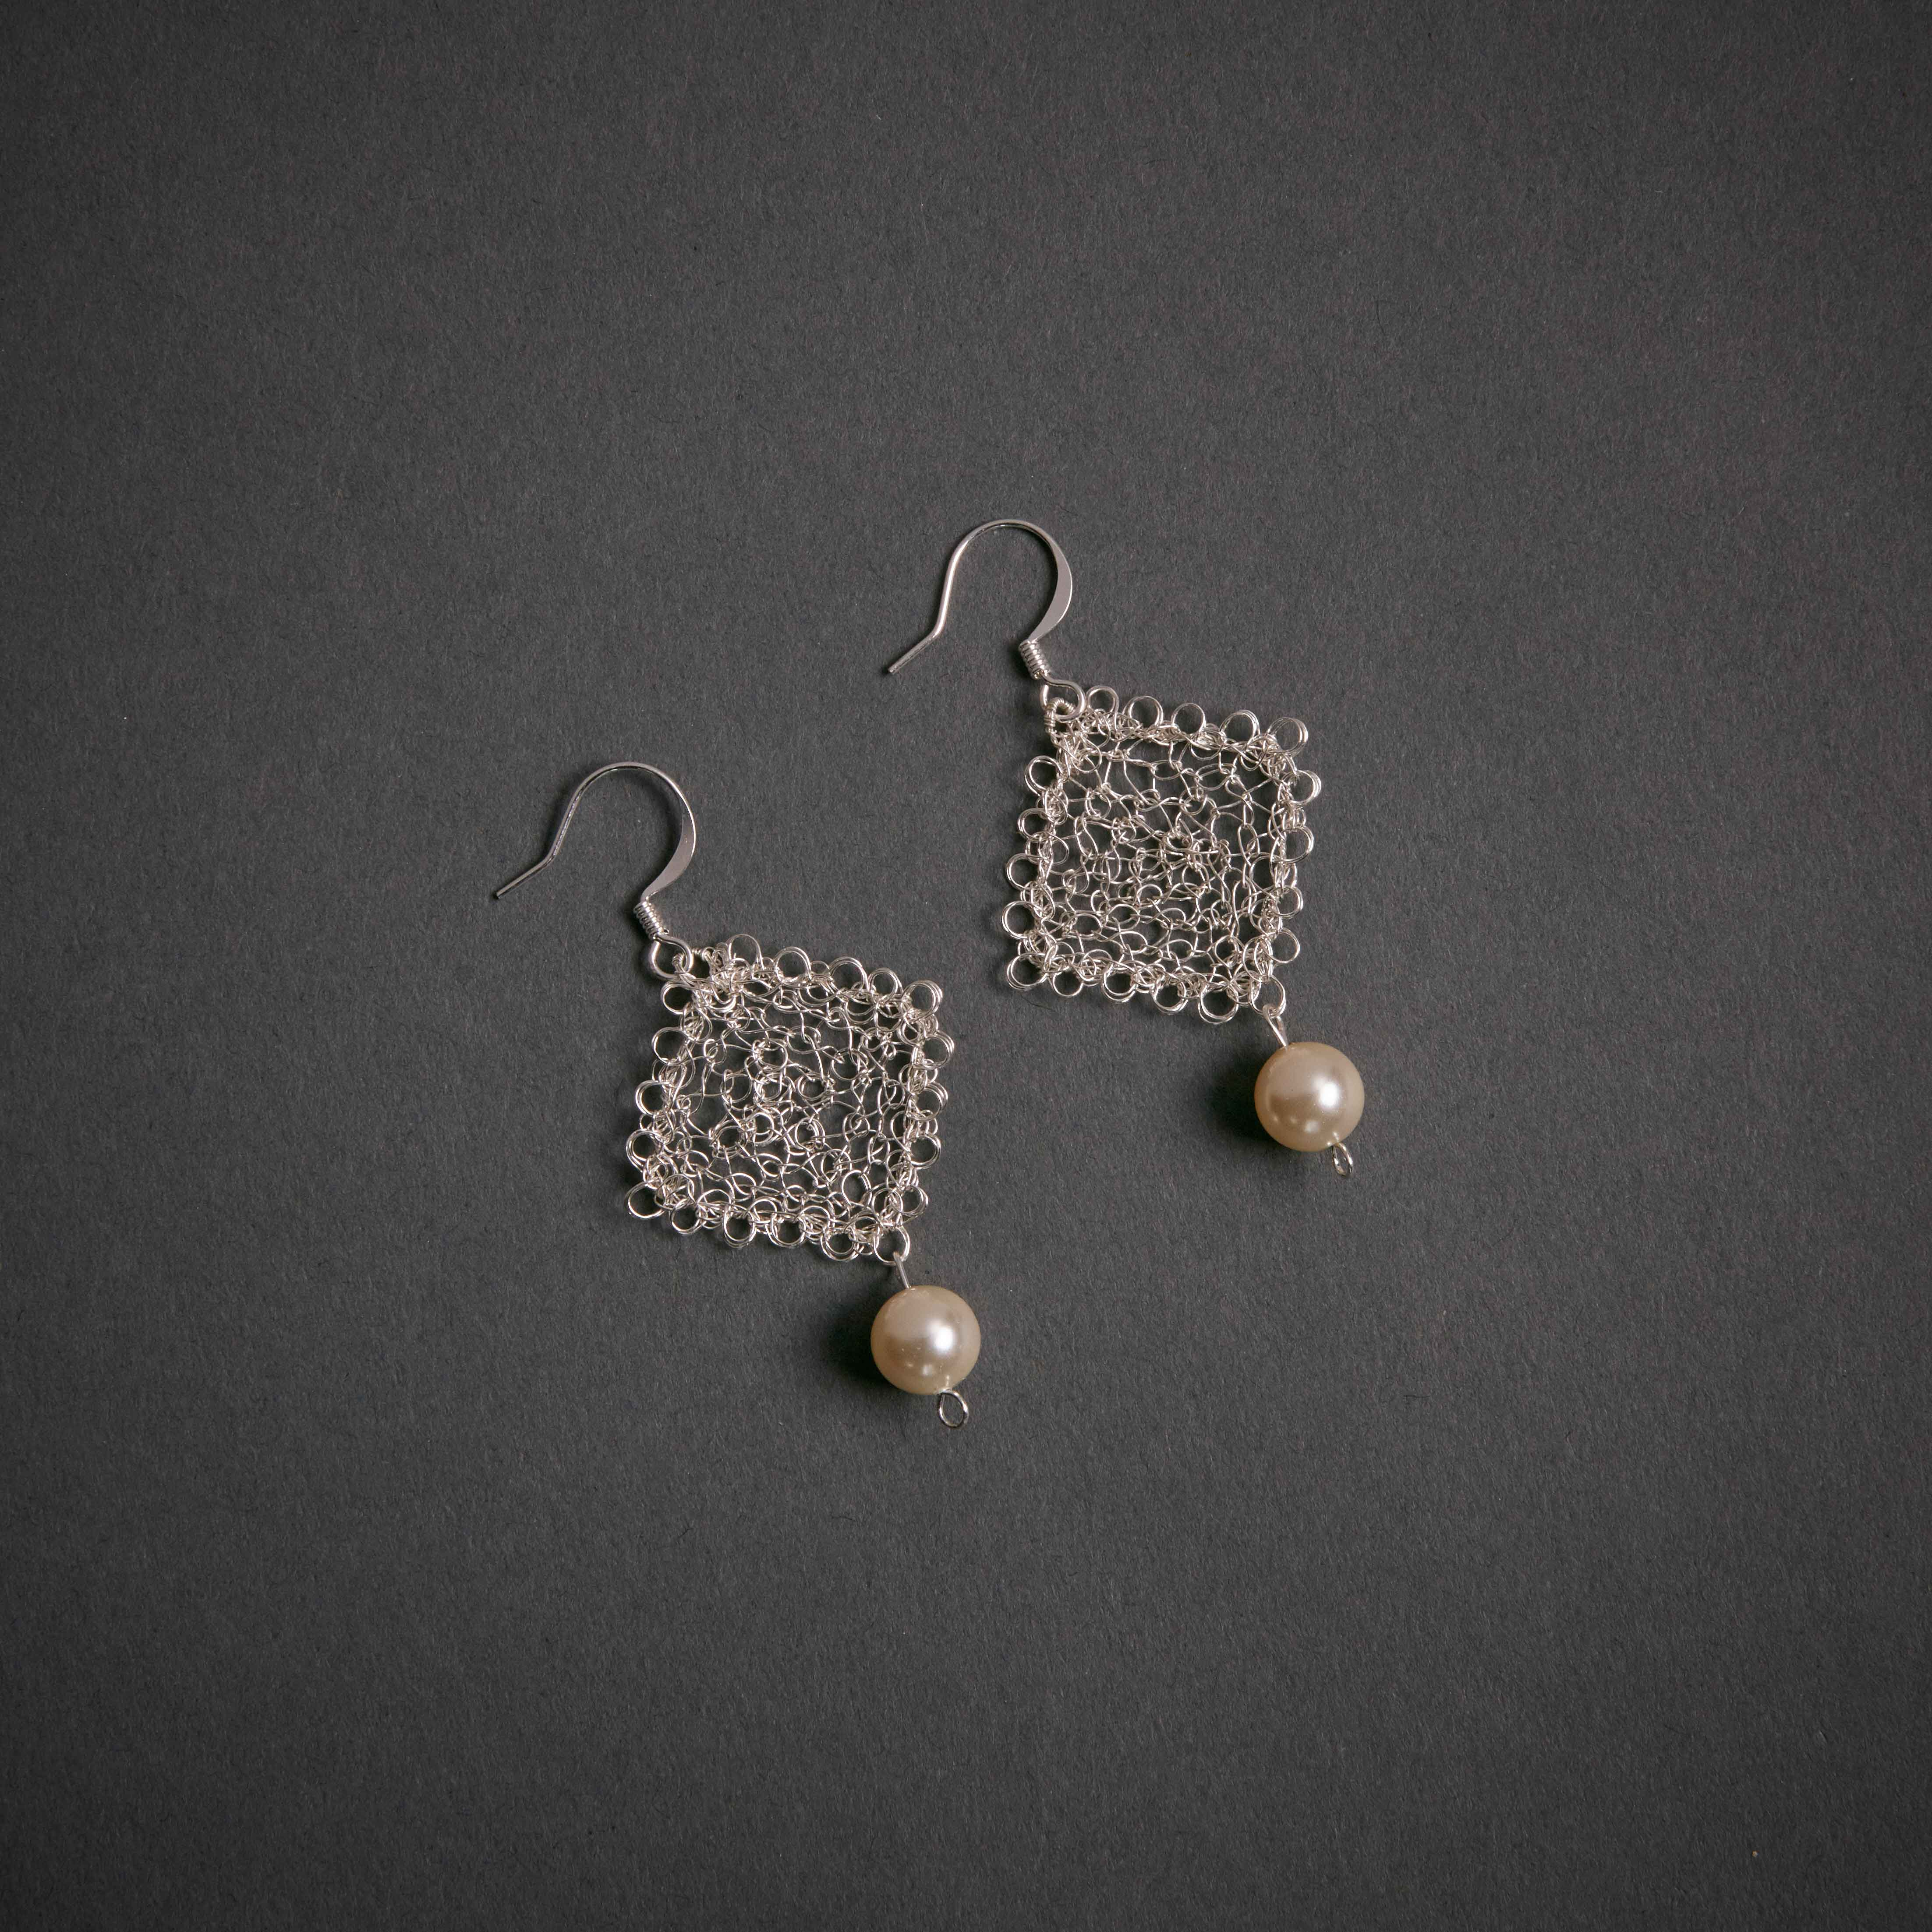 Silver Square Crochet Wire With Swarovski Pearl Global Sisters